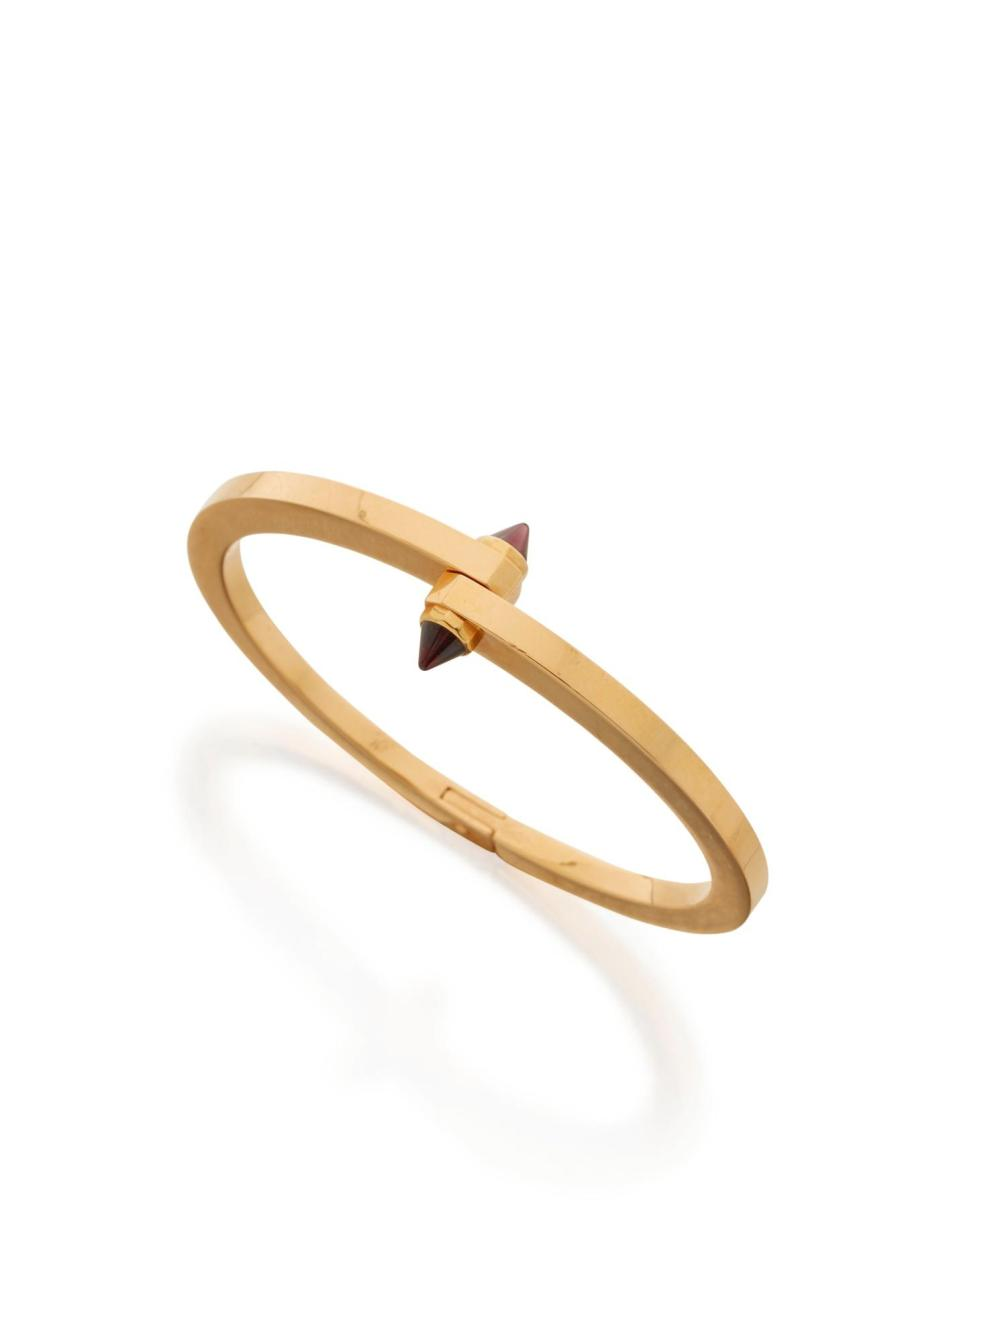 GOLD AND RHODOLITE GARNET 'MENOTTE' BANGLE-BRACELET, CARTIER